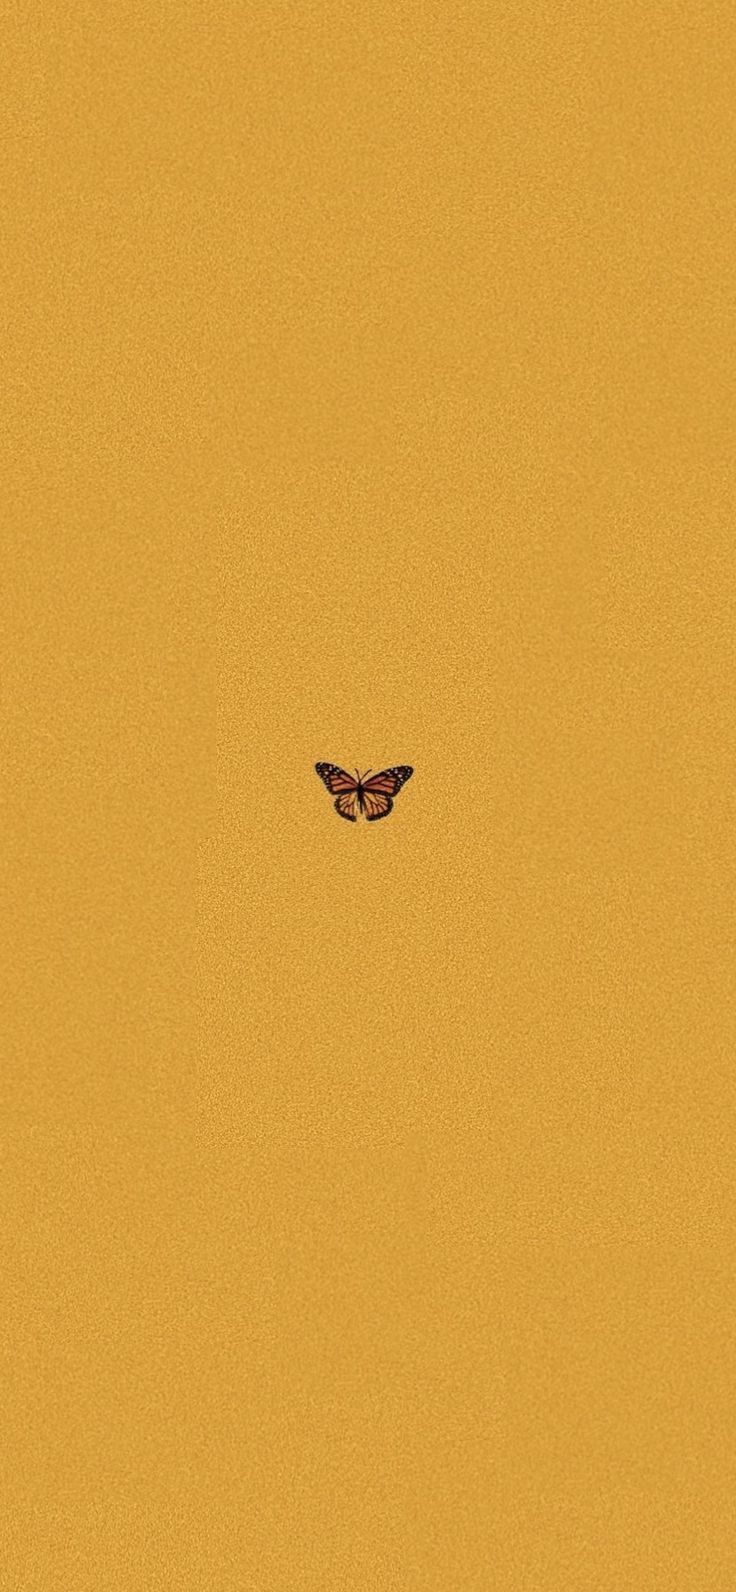 Butterfly Iphone Wallpaper Aesthetic Ipcwallpapers In 2020 Iphone Wallpaper Yellow Simple Iphone Wallpaper Iphone Wallpaper Tumblr Aesthetic